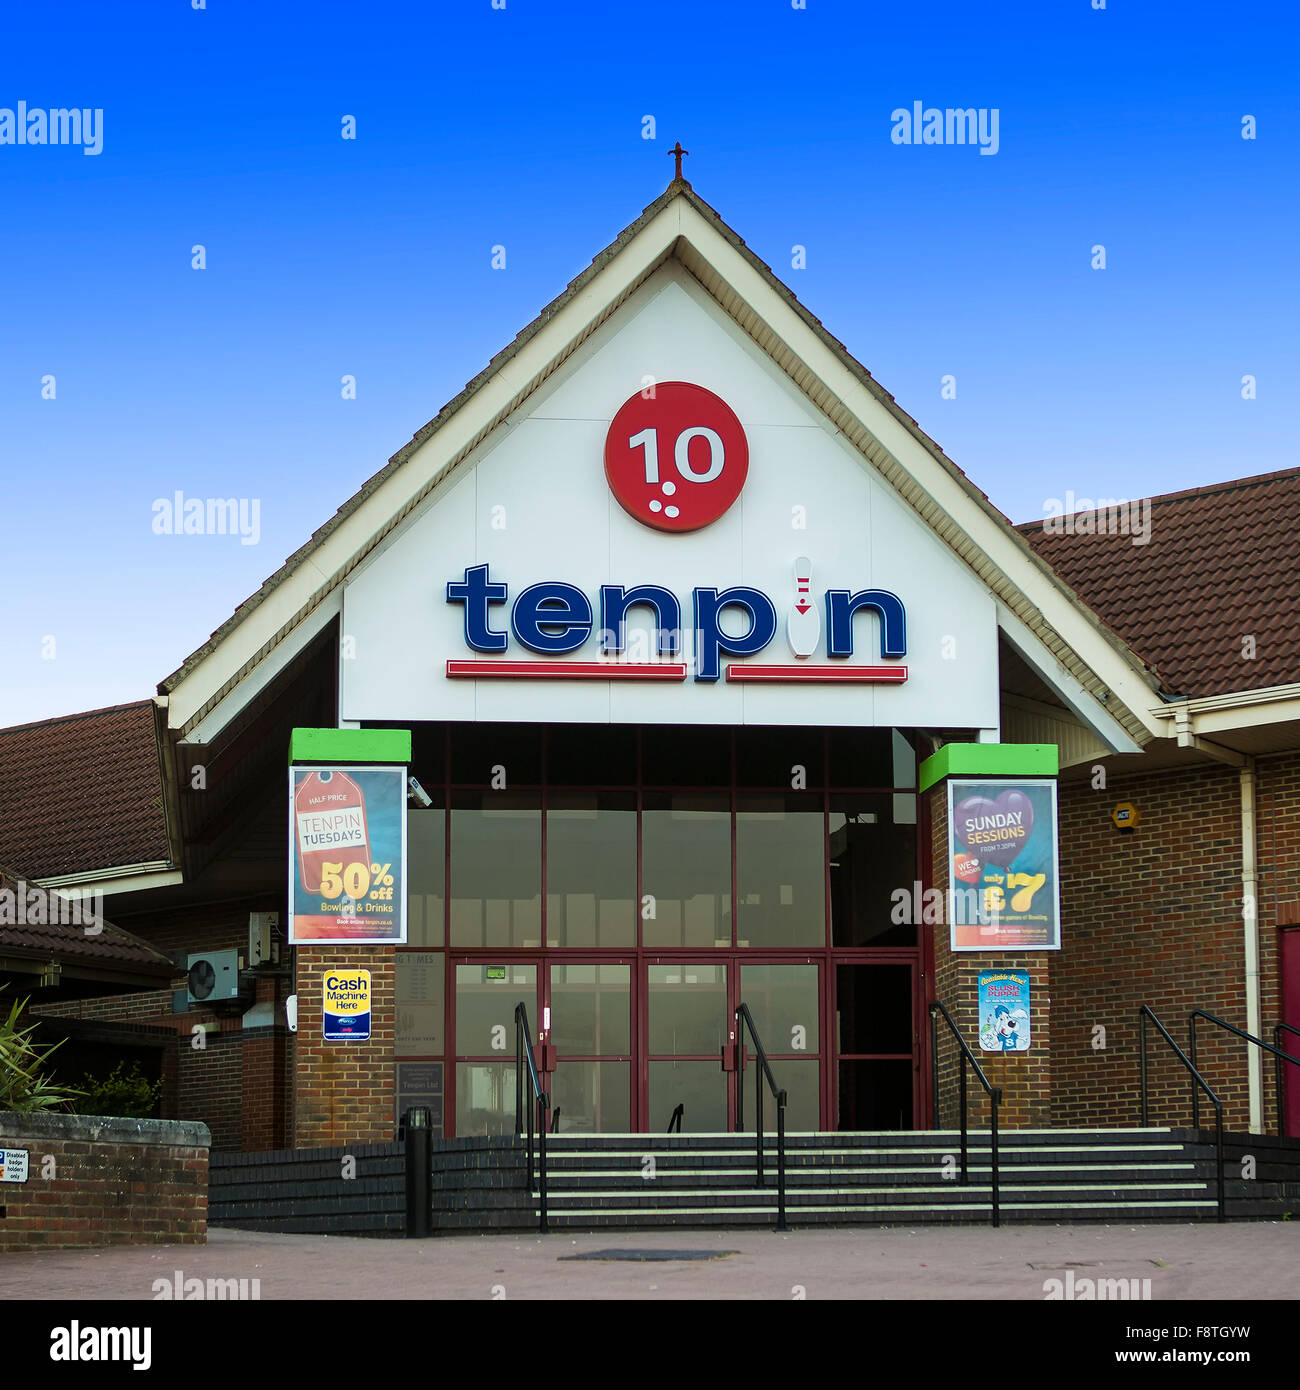 Tenpin Bowling, Shaw Ridge Leisure Park, West Swindon, Wiltshire - Stock Image